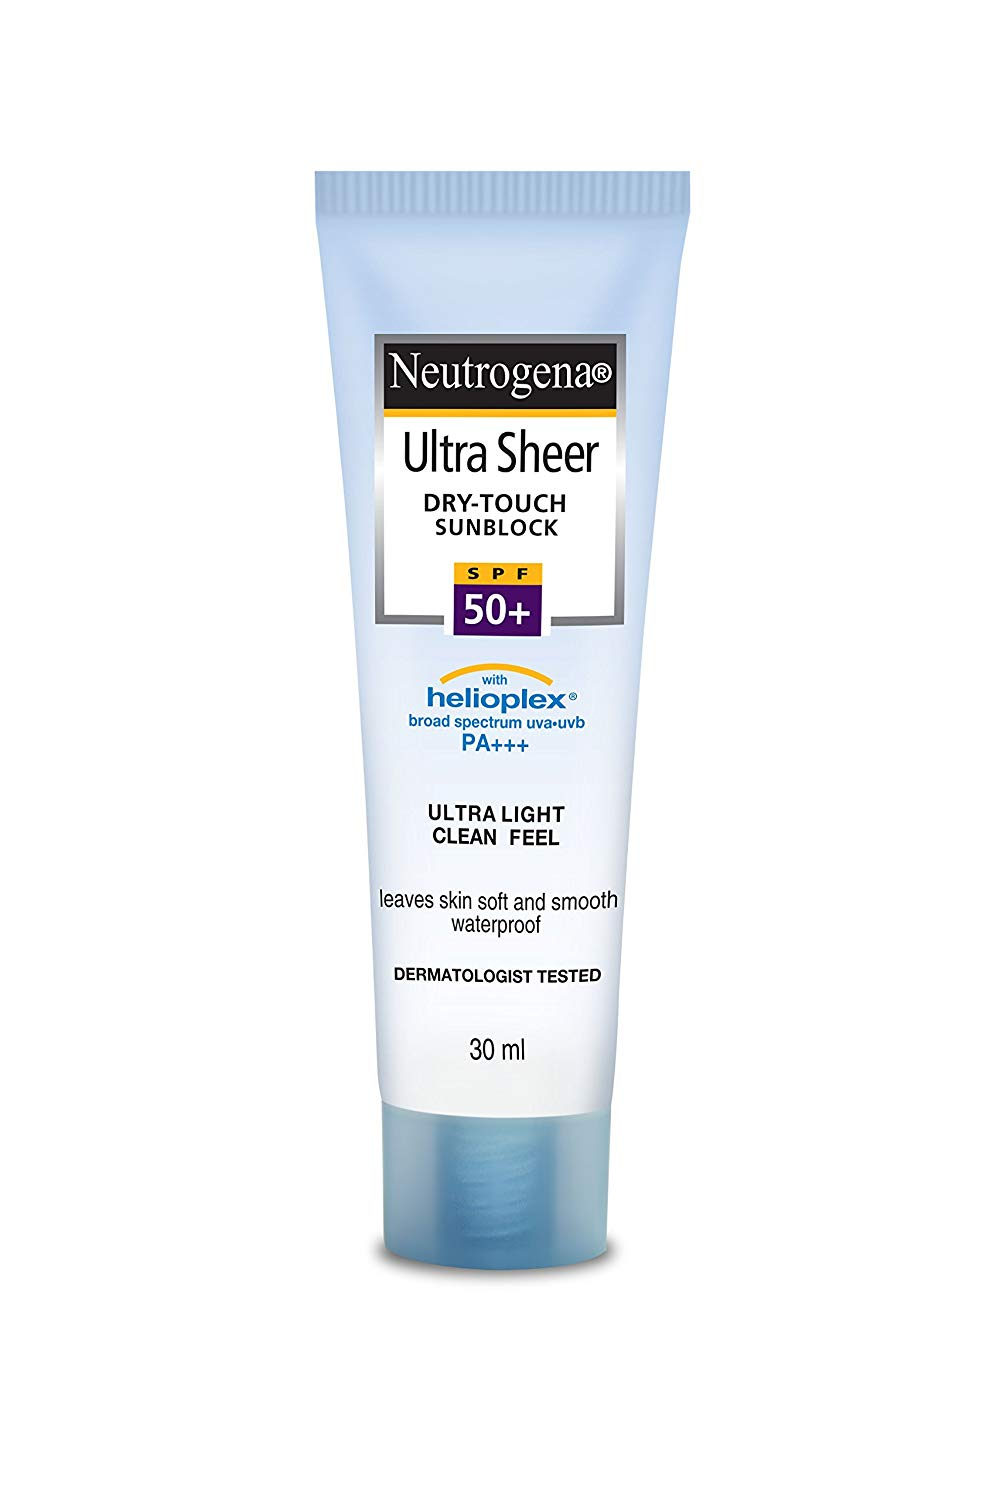 Ultra Sheer Dry Touch SunBlock Ultra Sheer Dry Touch SPF 50 30ml pack of 2